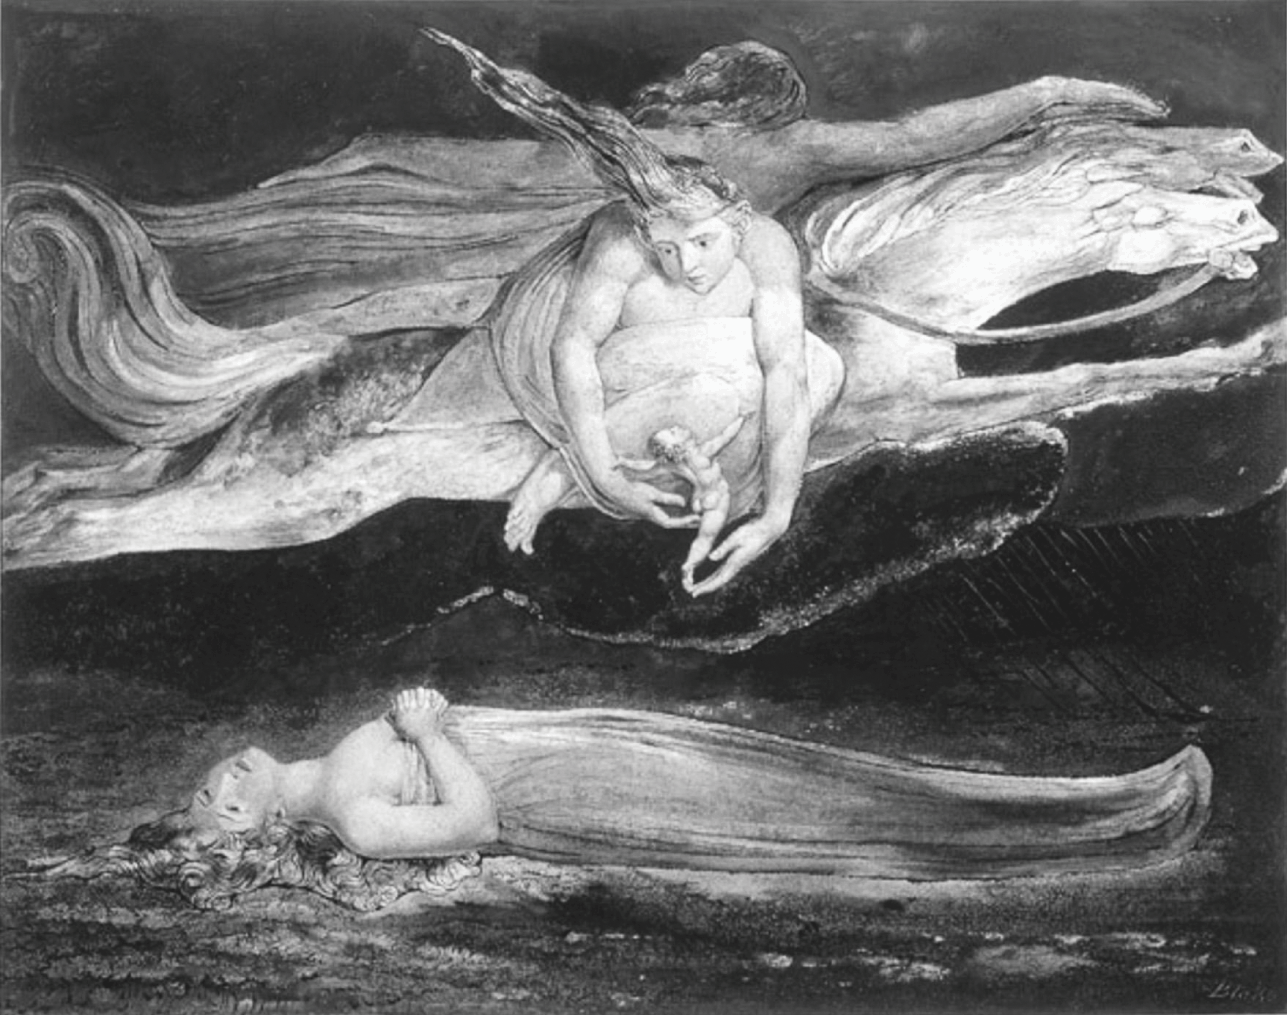 Creative Cross-Currents (Part III) - William Blake in Context